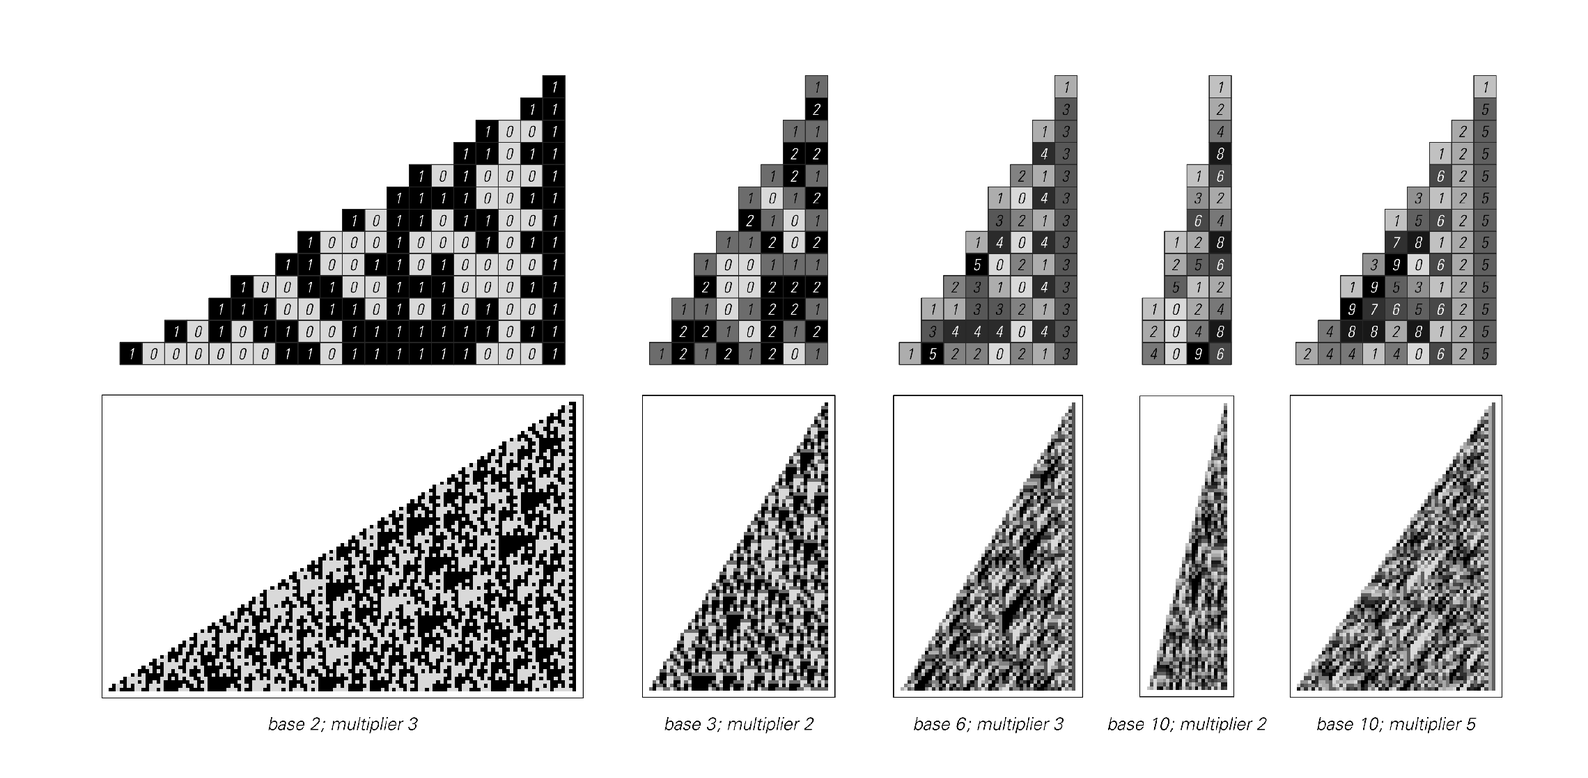 Patterns of digits in various bases